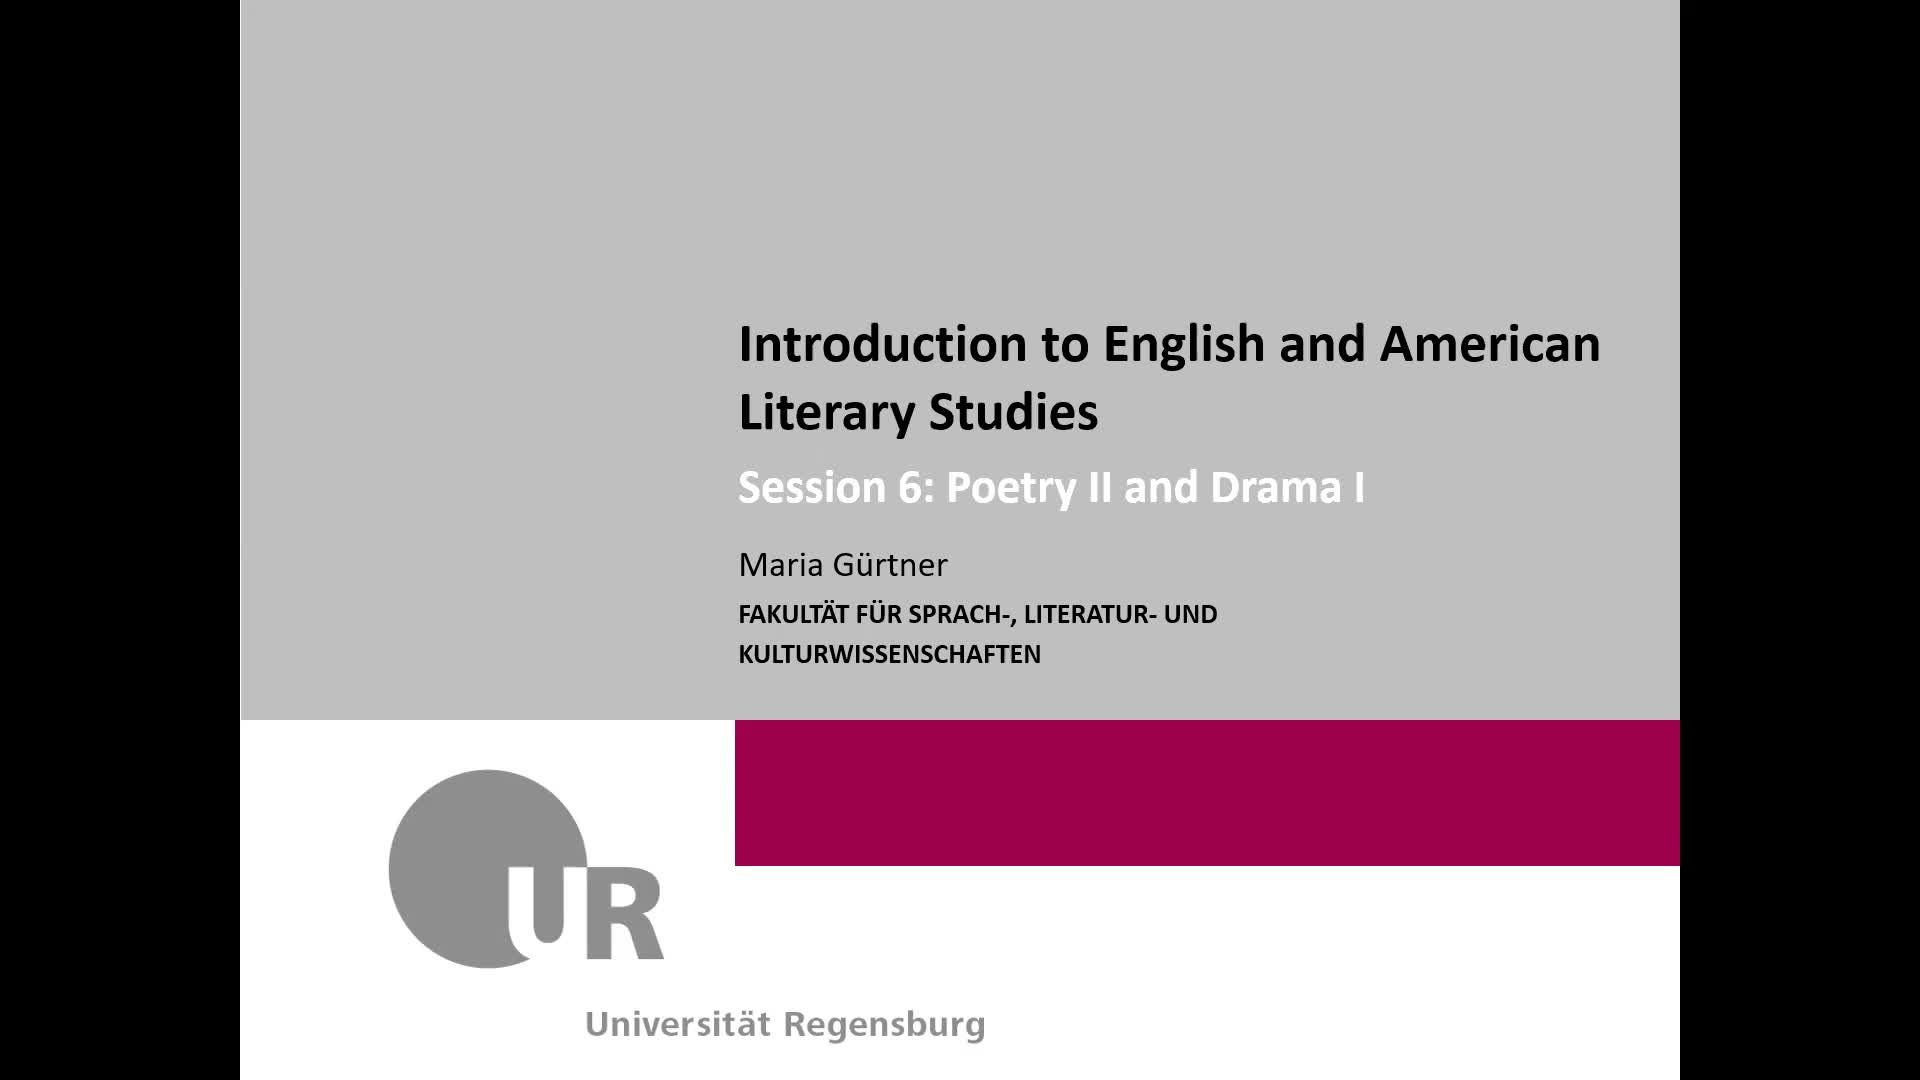 Session 6: Poetry II and Drama I